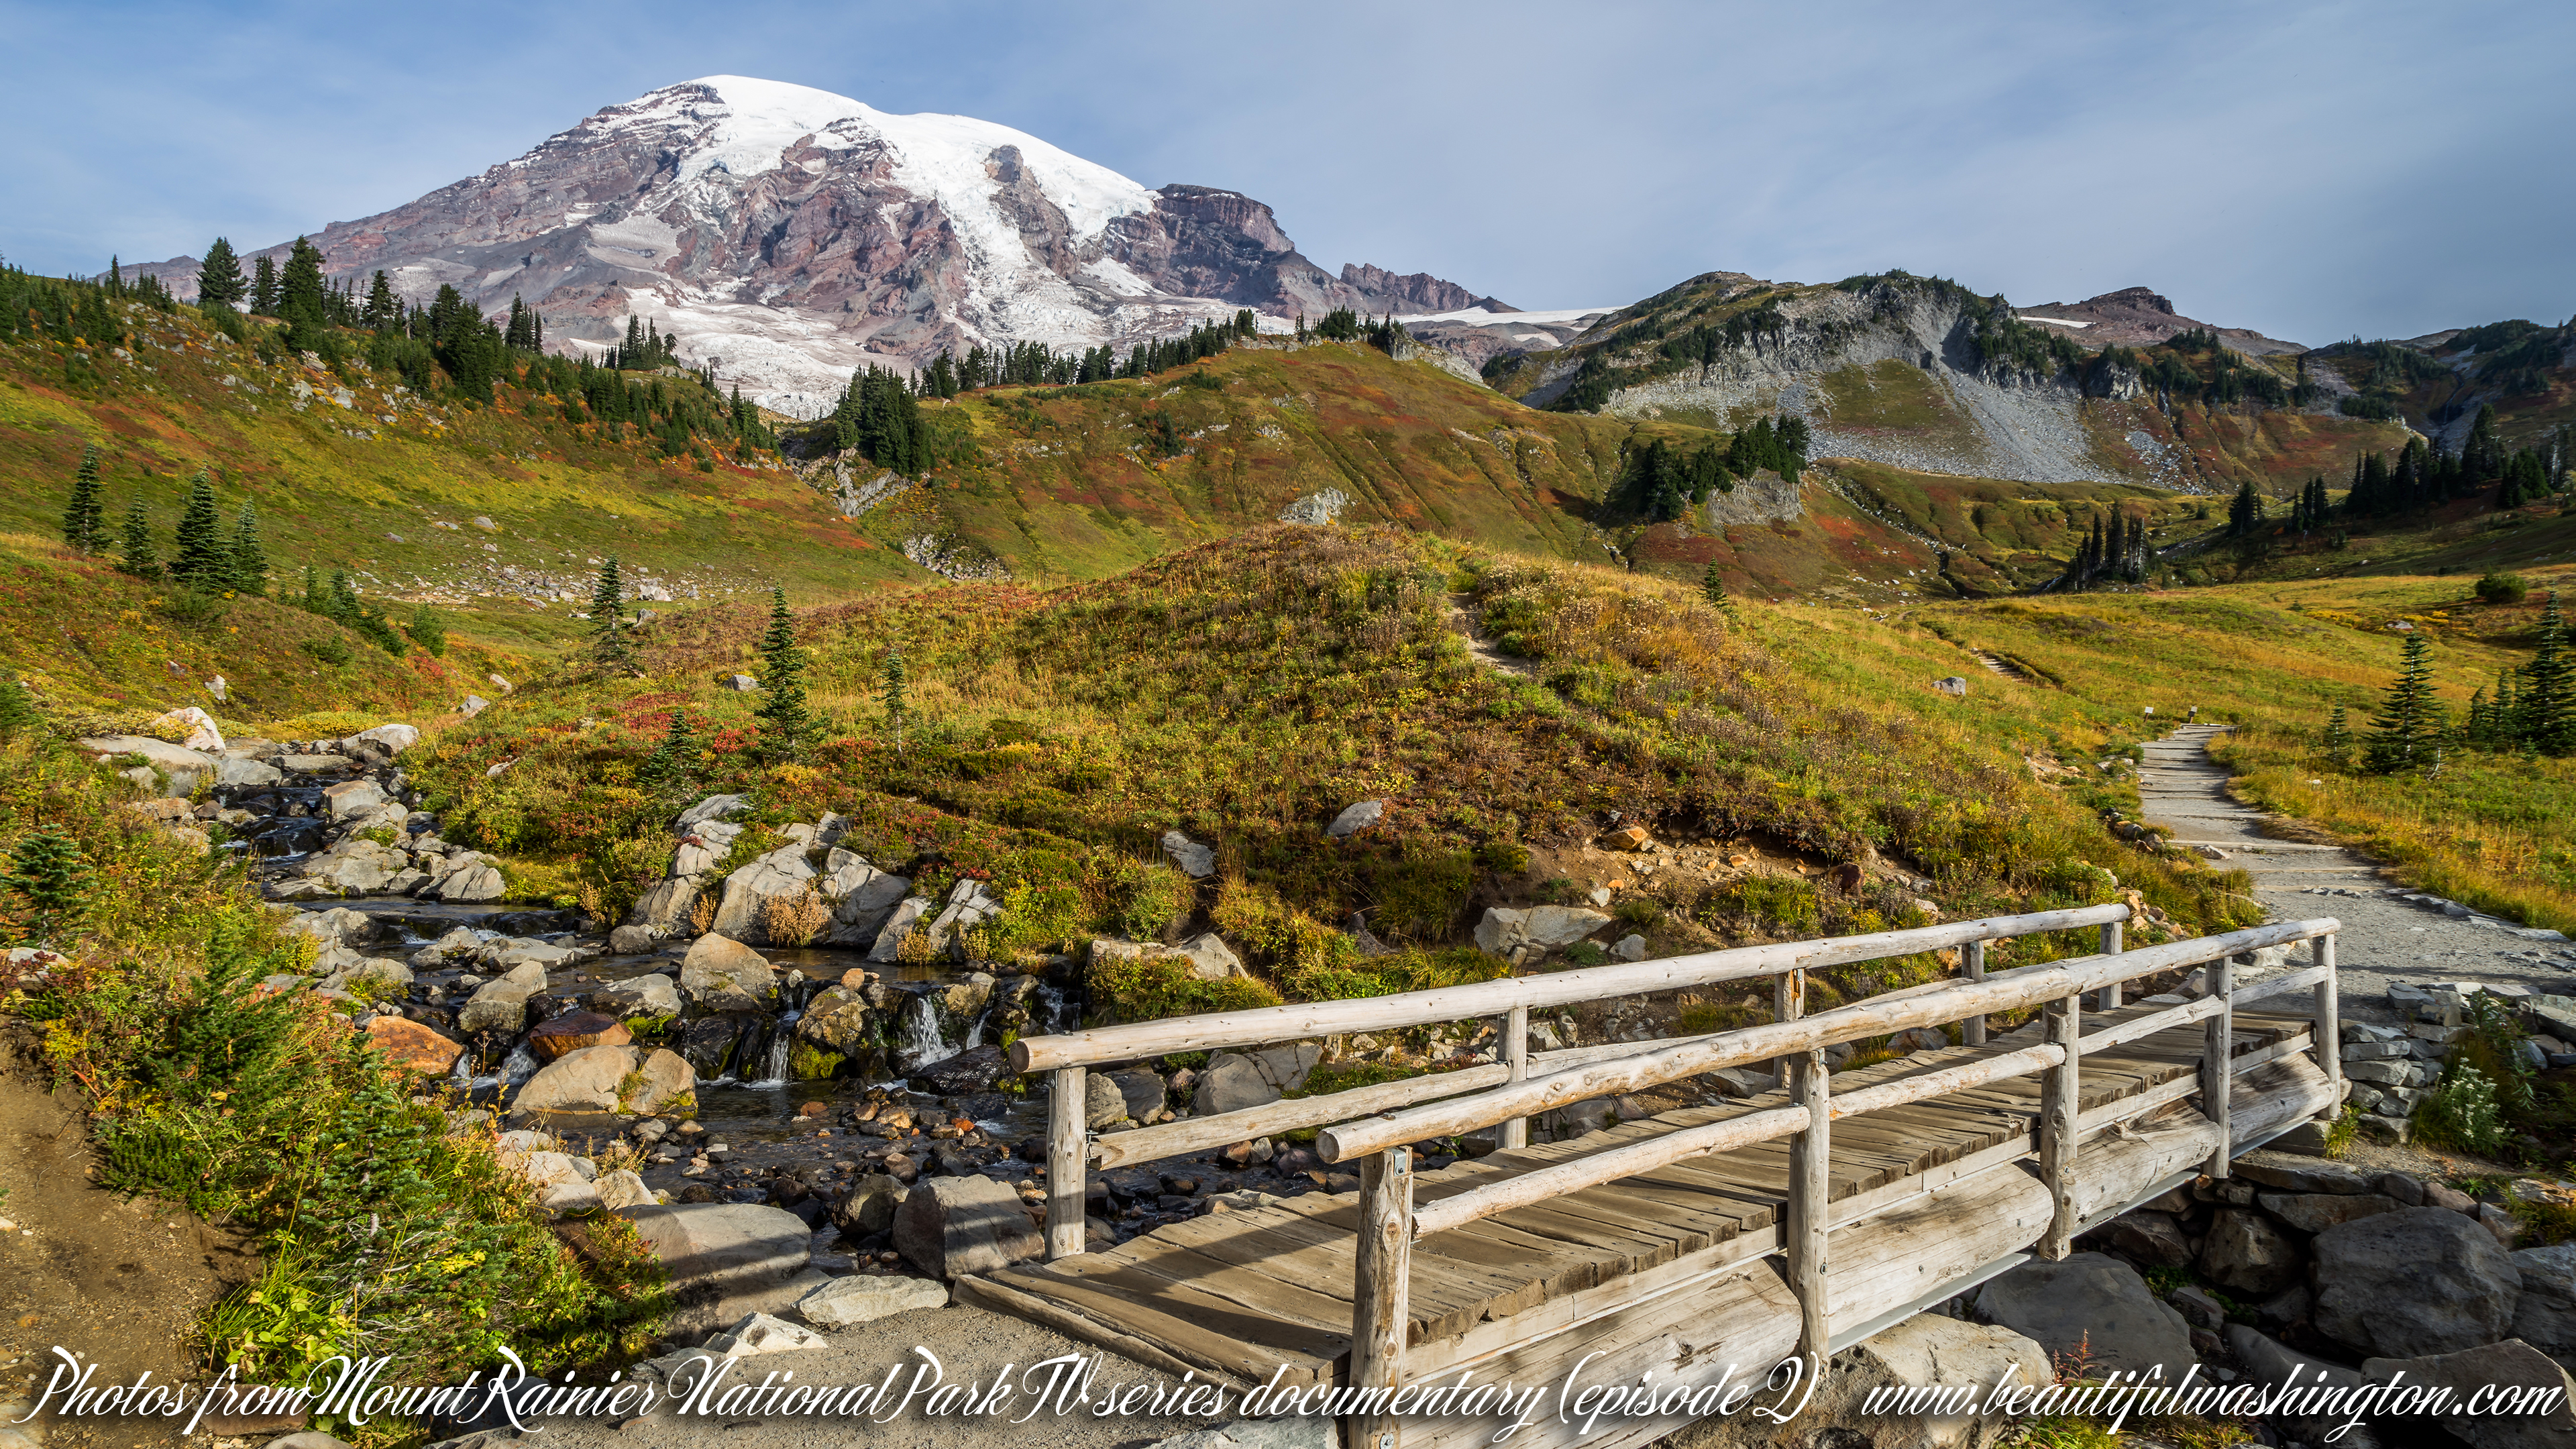 Photo from Washington State, Mount Rainier National Park